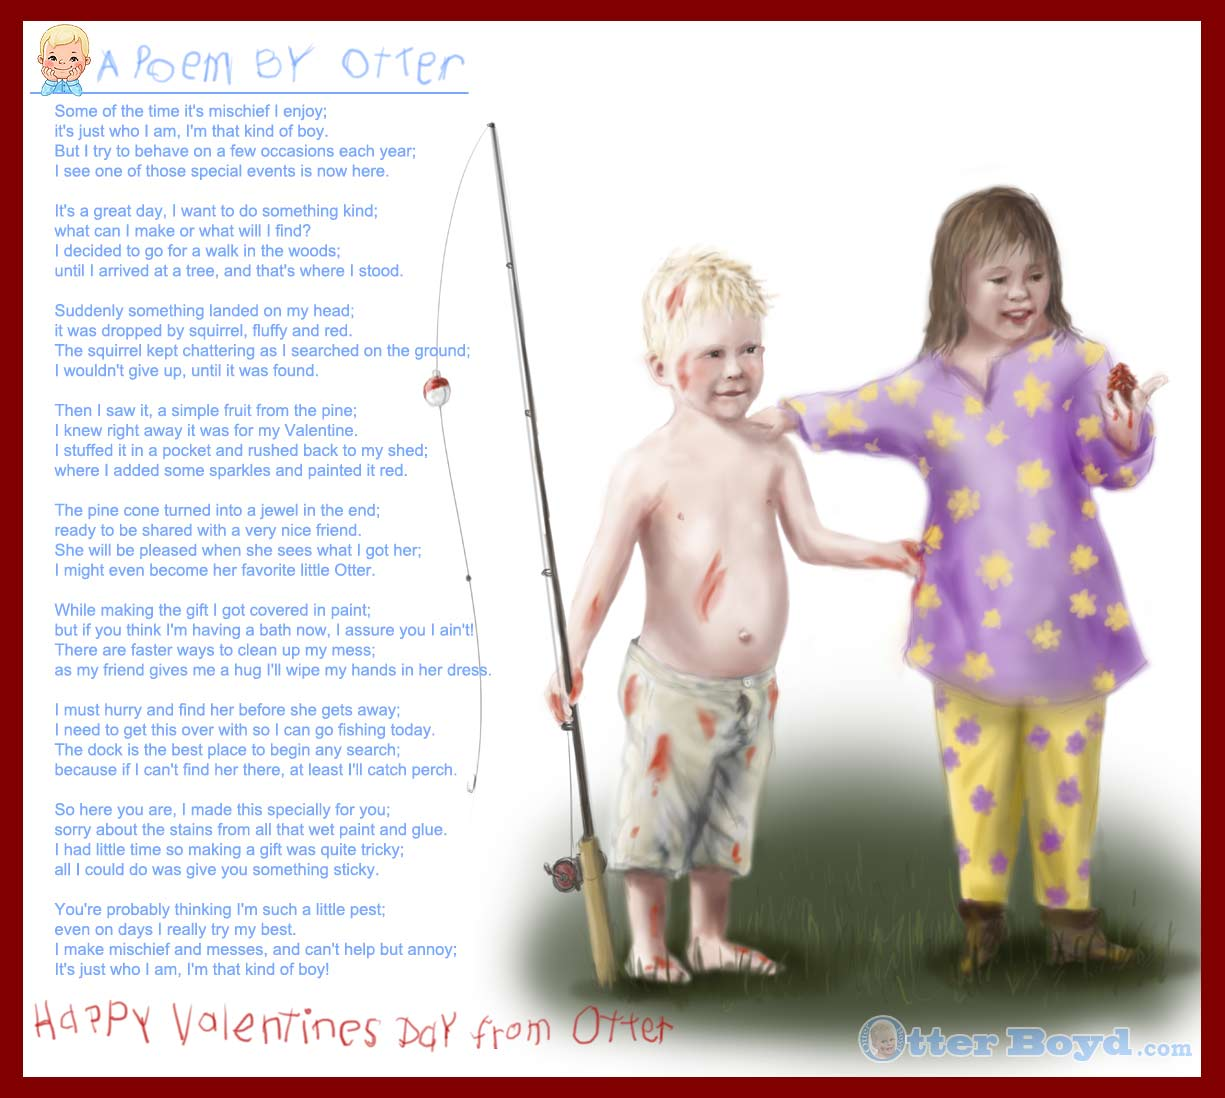 otters valentines day poem and painting of a boy with fishing rod and girl with a gift